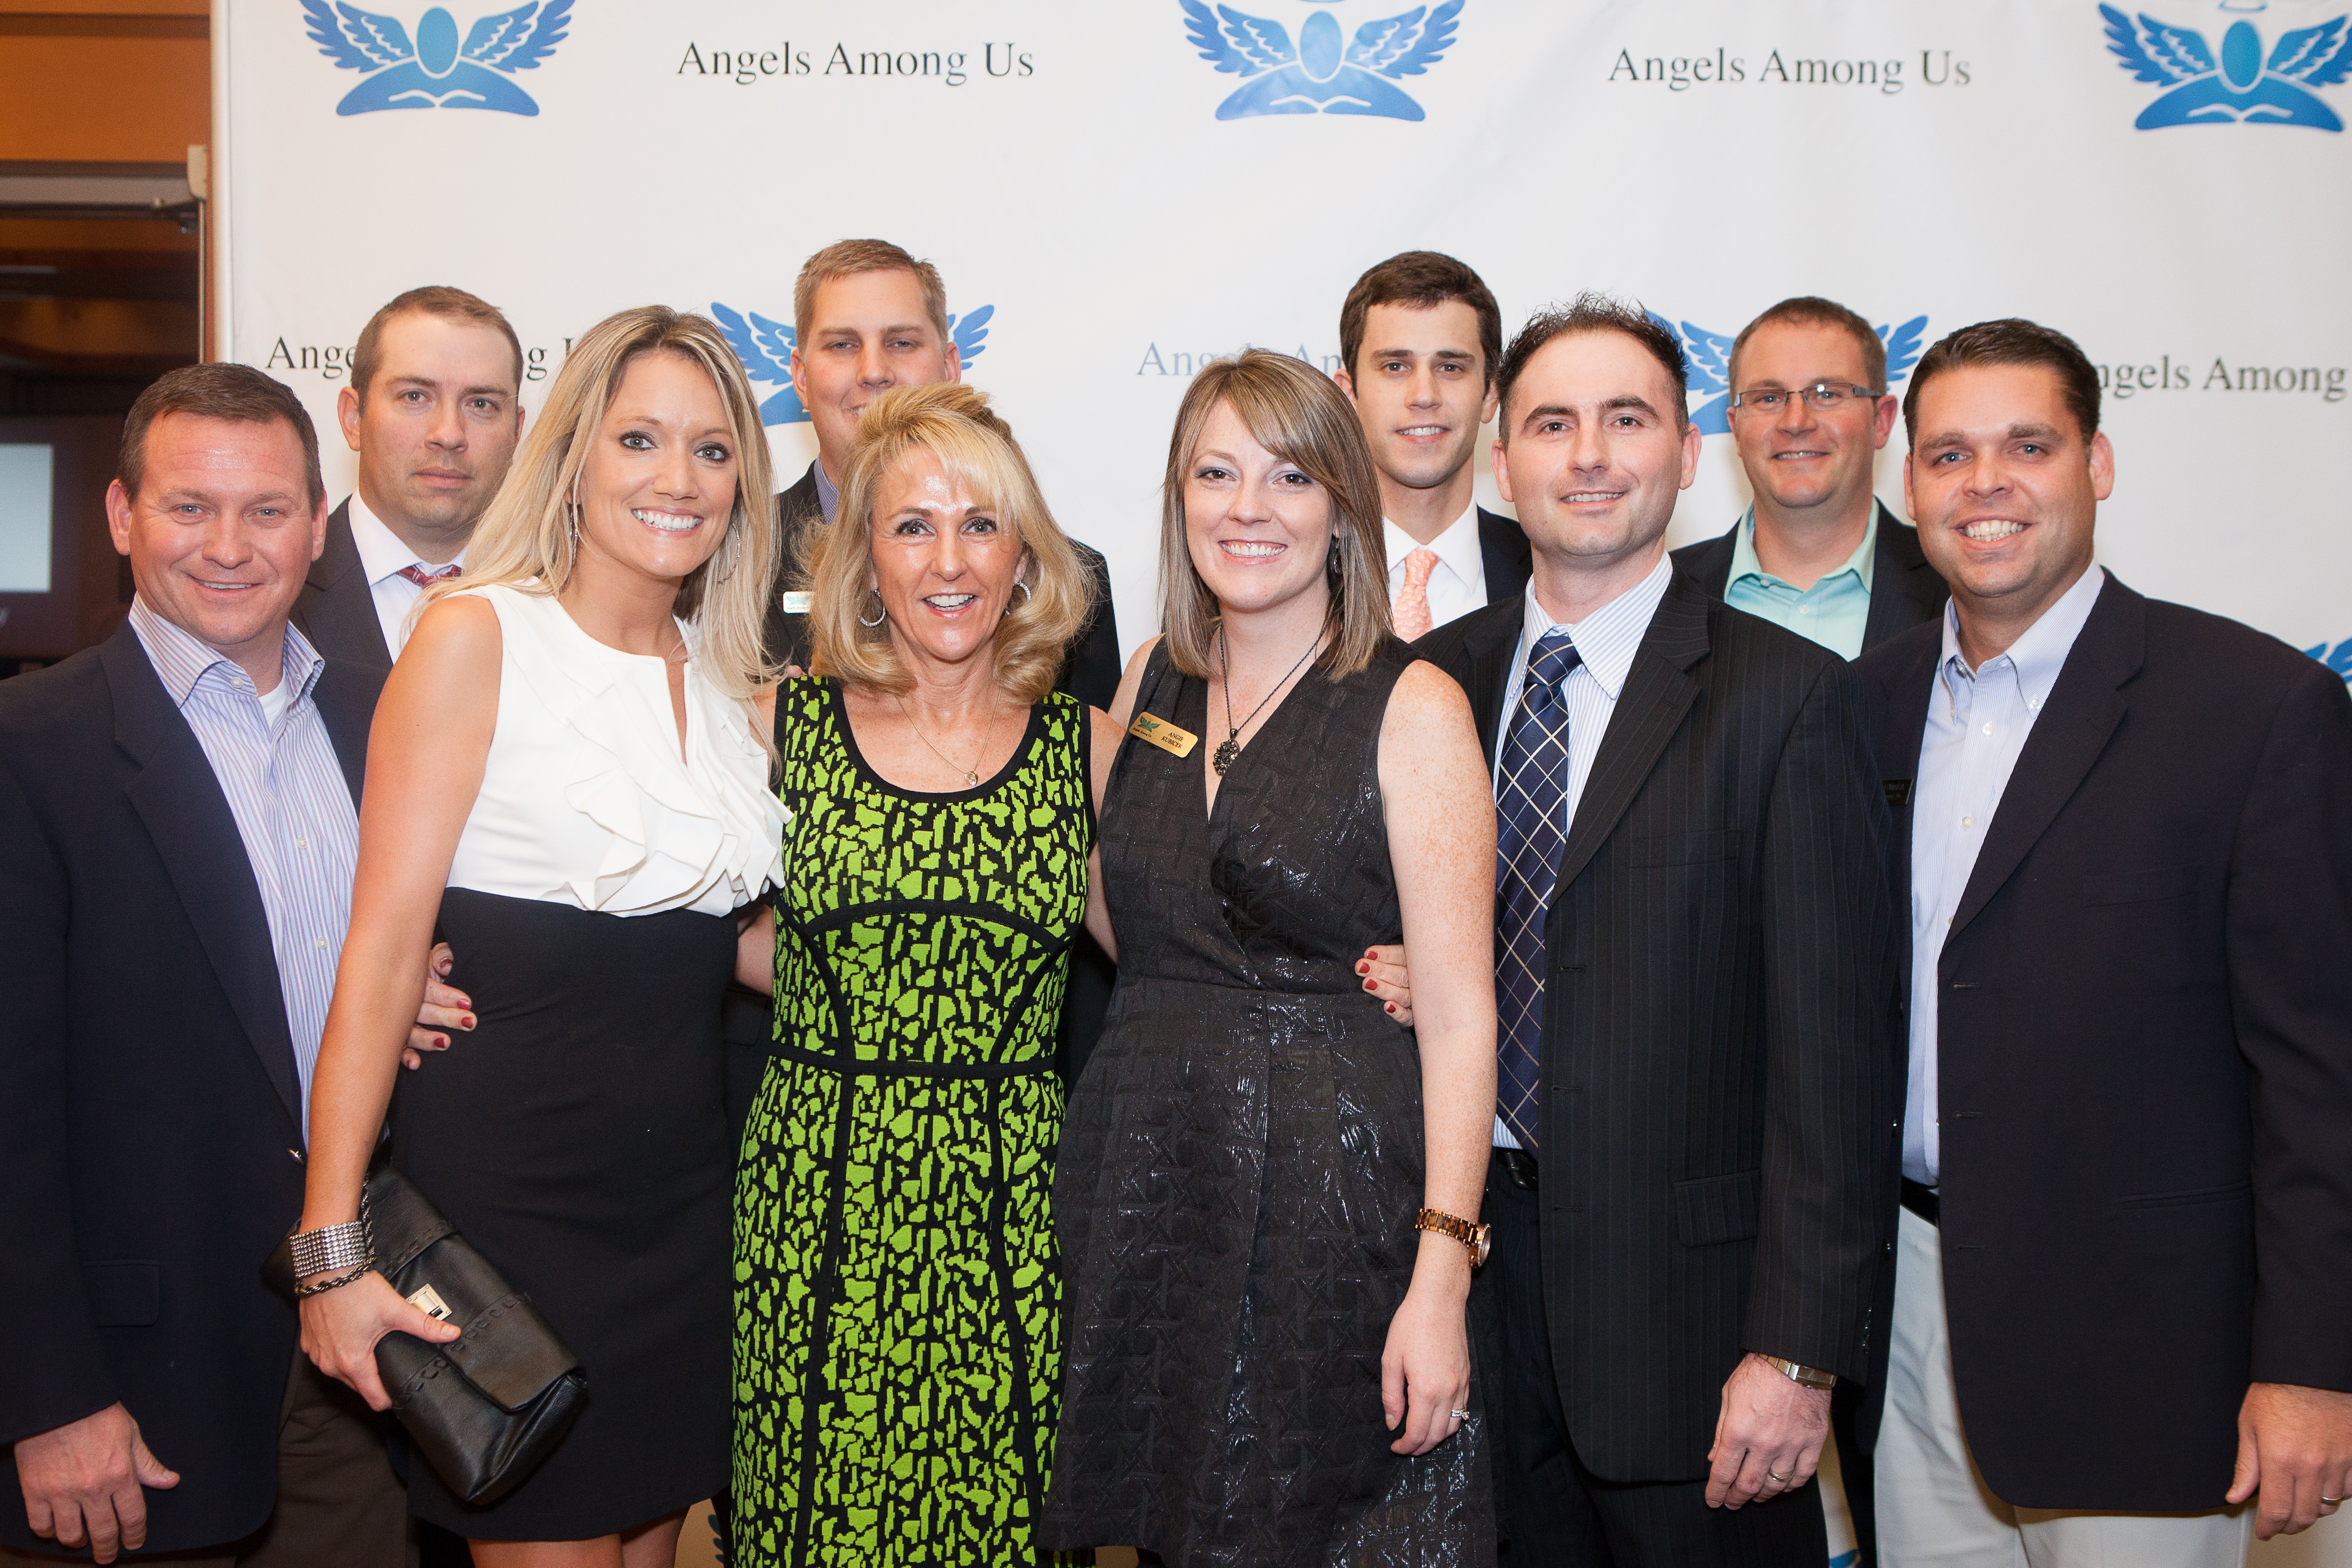 Save The Date for the 2016 Evening Among Angels Event